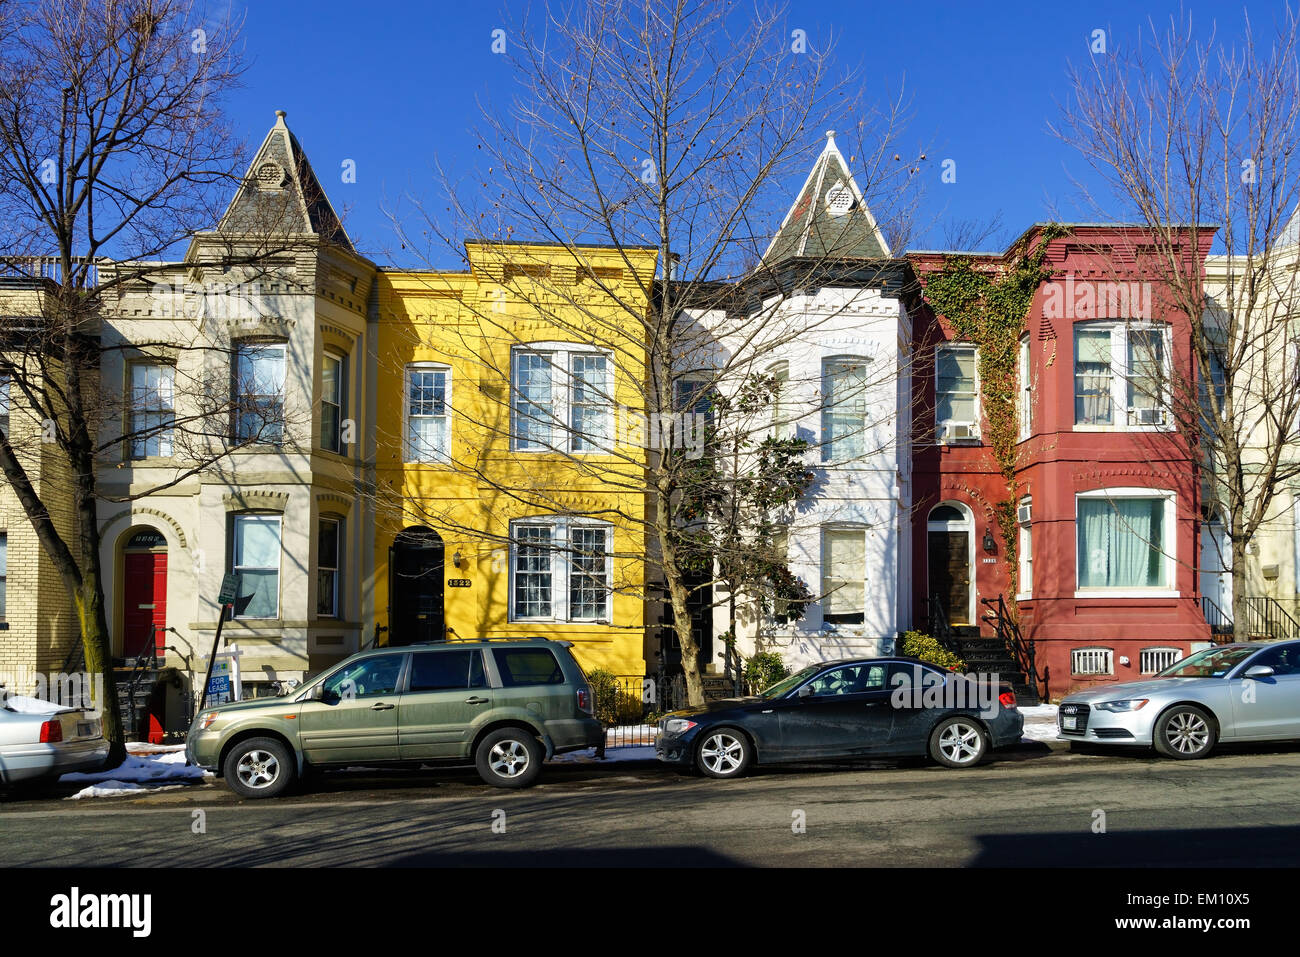 Colorful old houses in the historic area of Georgetown, Washington DC, USA. - Stock Image